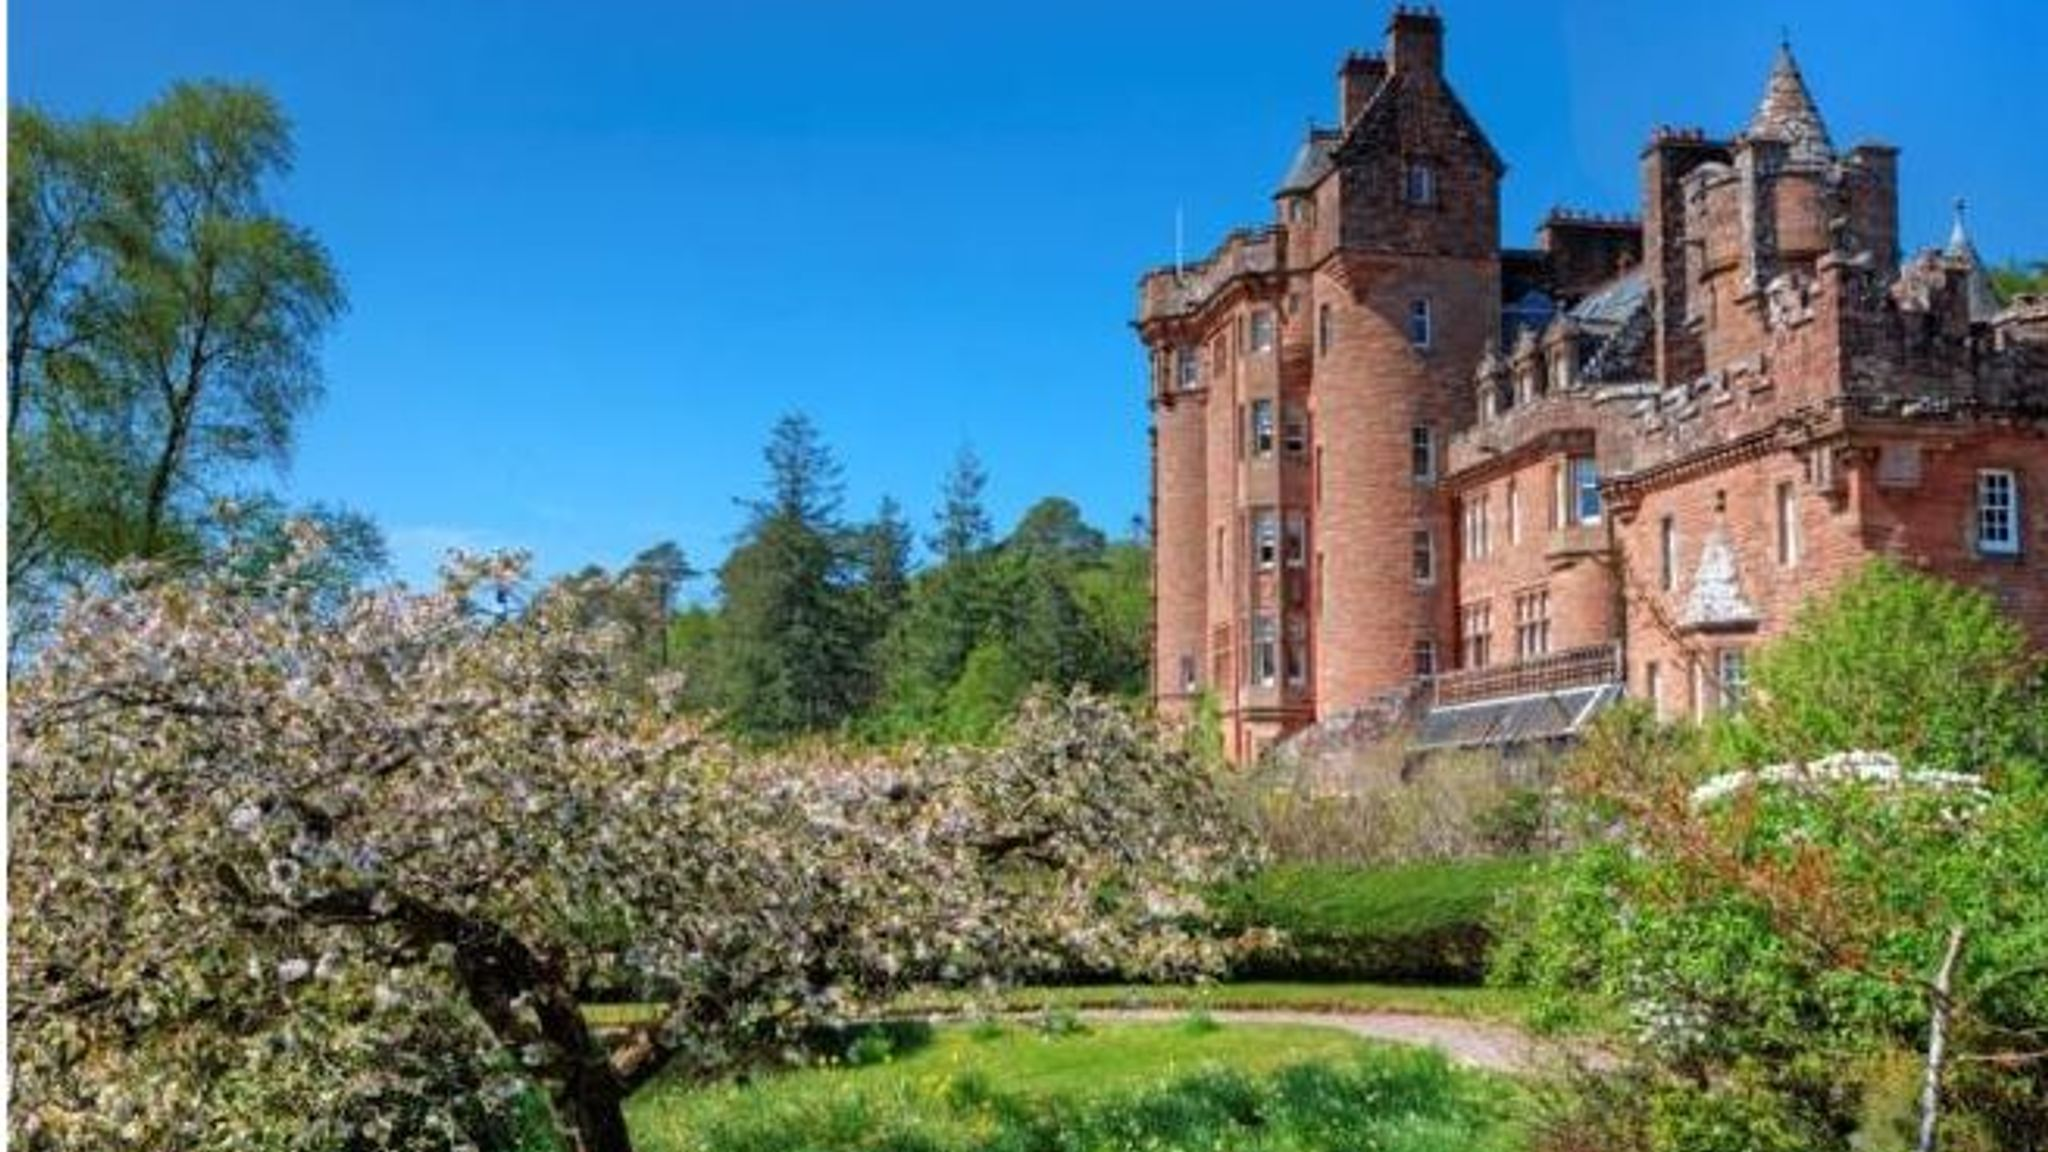 Revealed: Castle and footballer's mansion among the most-viewed homes for sale